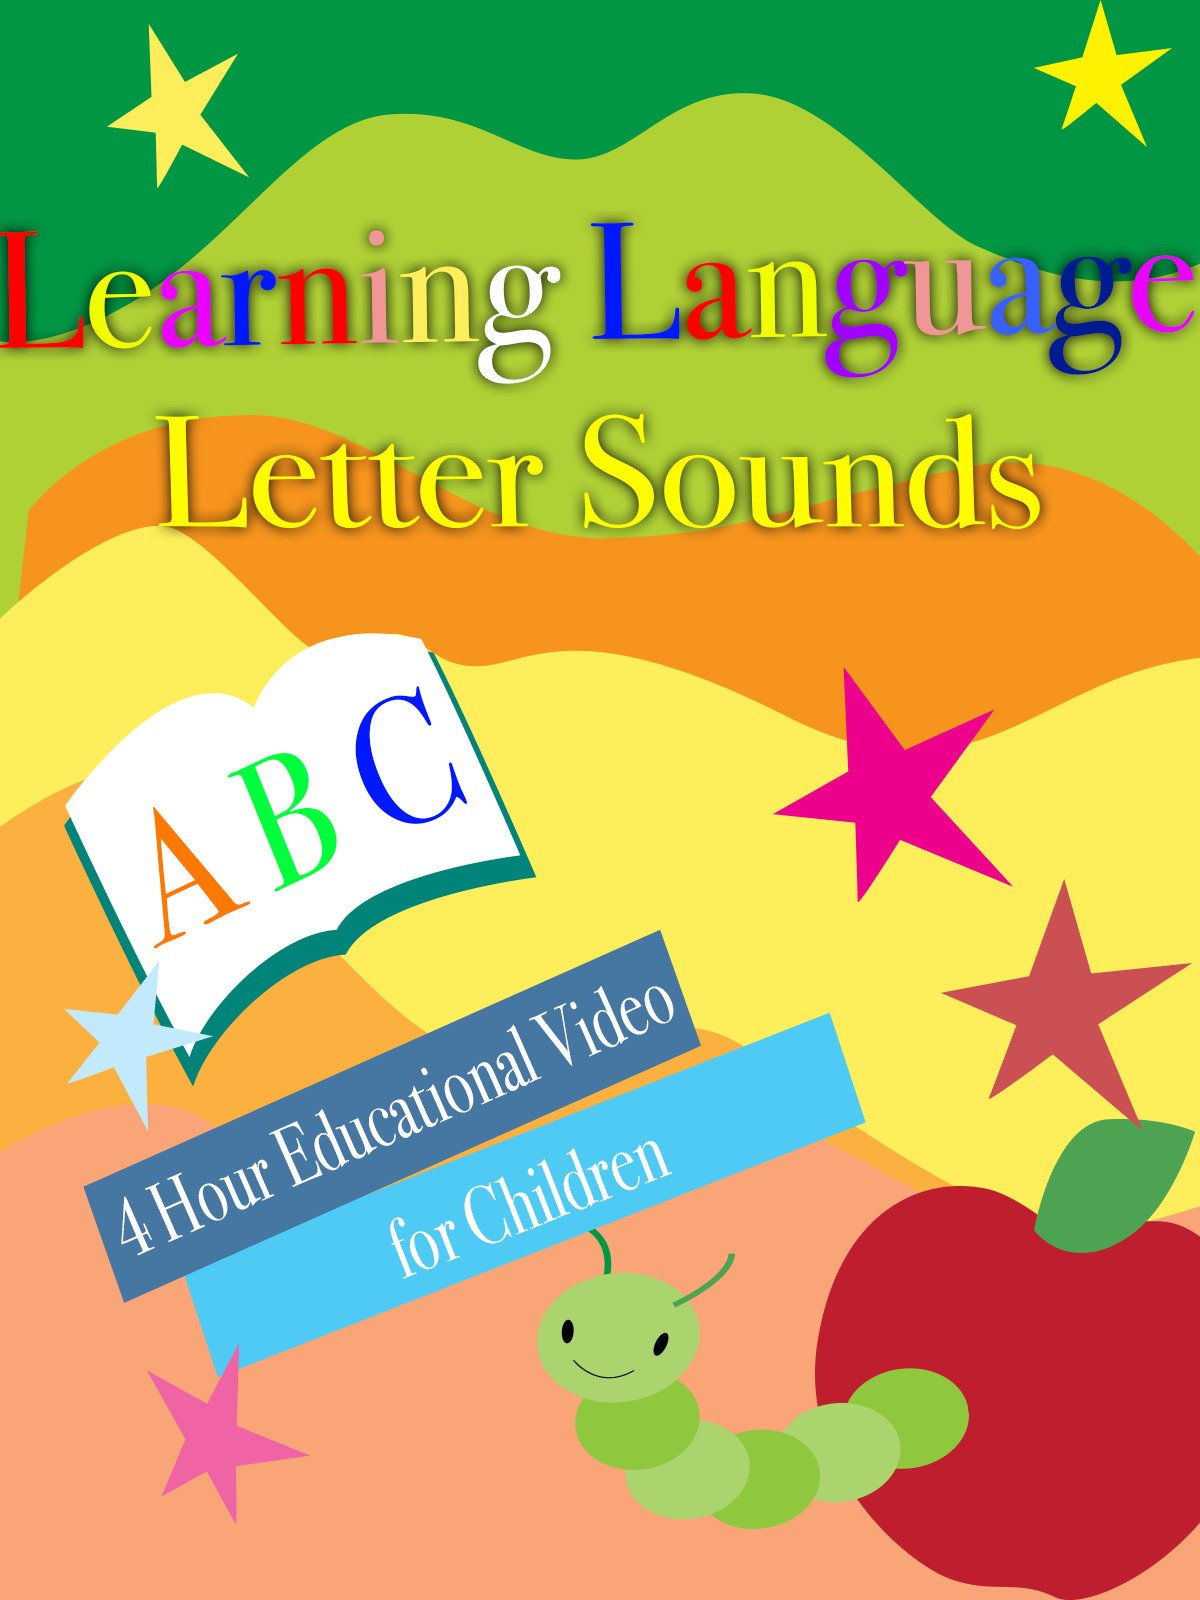 Learning Language Letter Sounds 4 Hour Educational Video for Children on Amazon Prime Video UK